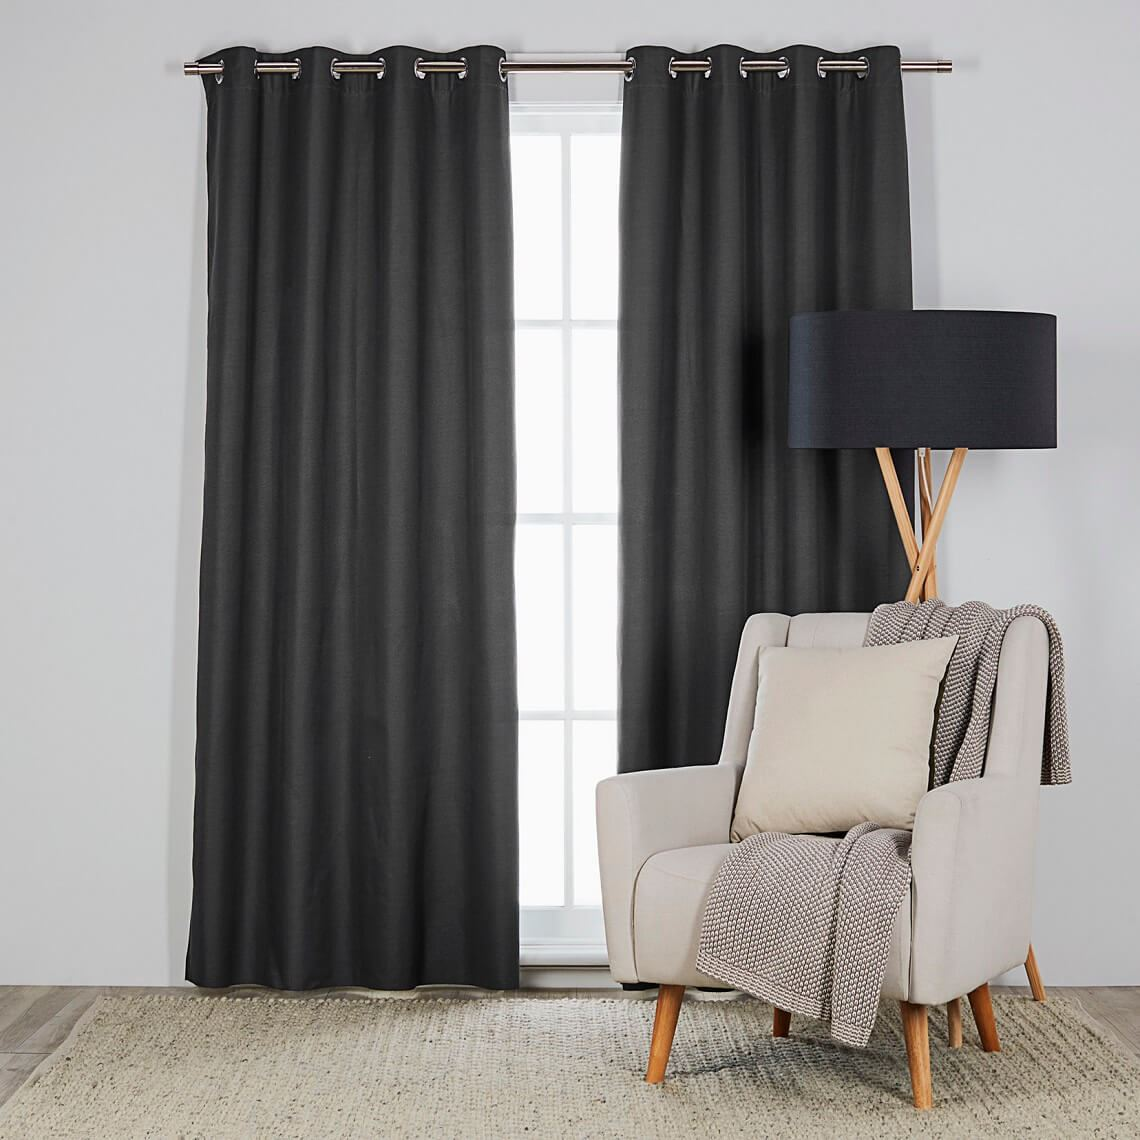 Berle Blockout Eyelet Curtain Size W 240cm x D 0cm x H 230cm in Charcoal 100% Polyester/Acrylic Flock Coating/Stainless Steel Freedom by Freedom, a Curtains for sale on Style Sourcebook